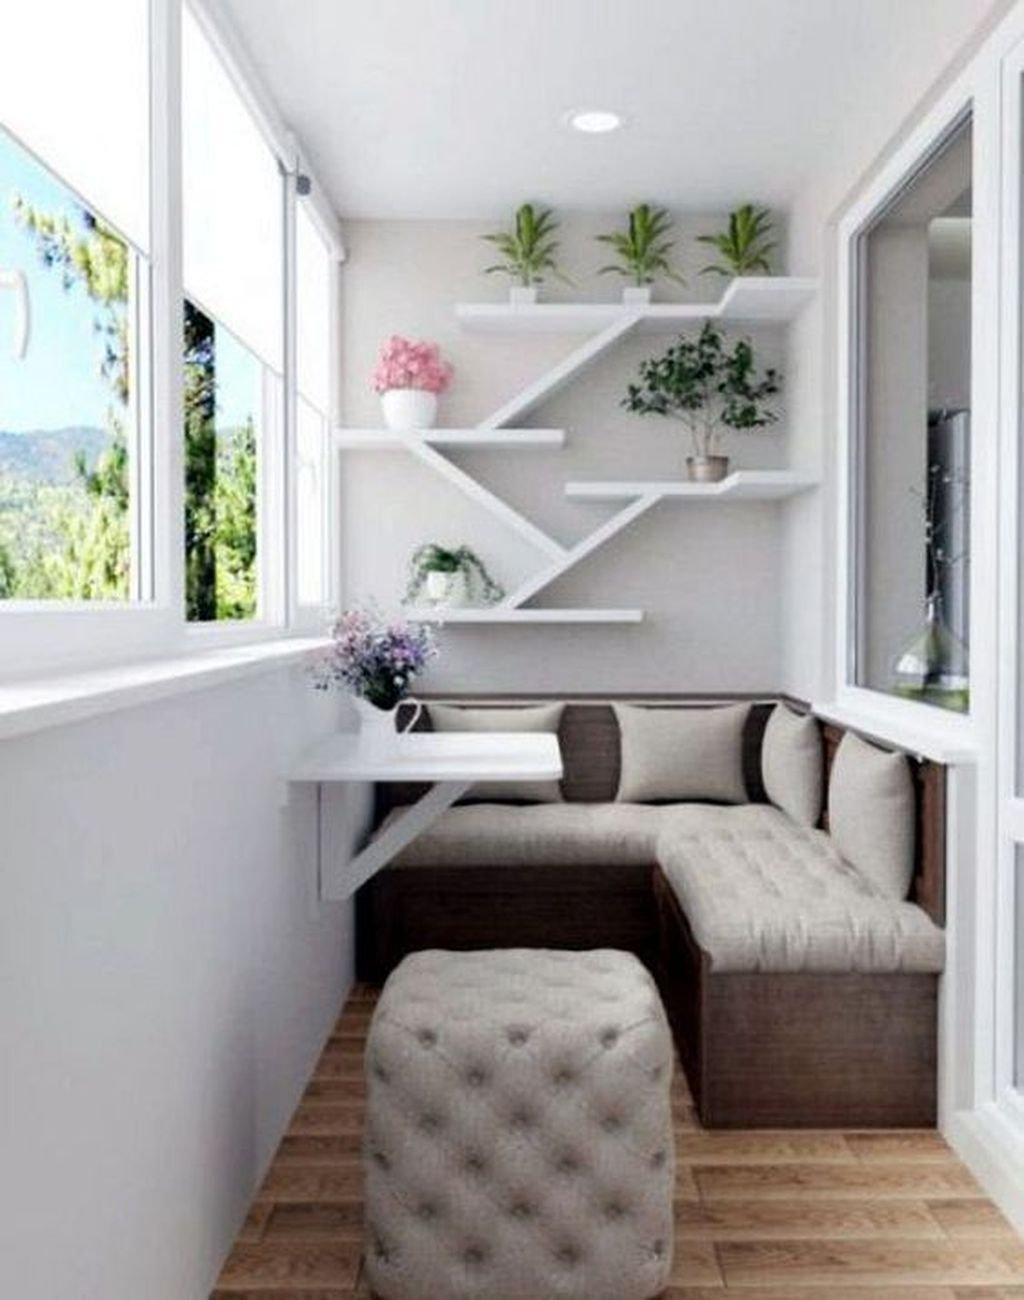 Designing an apartment balcony design doesnt have to be ...